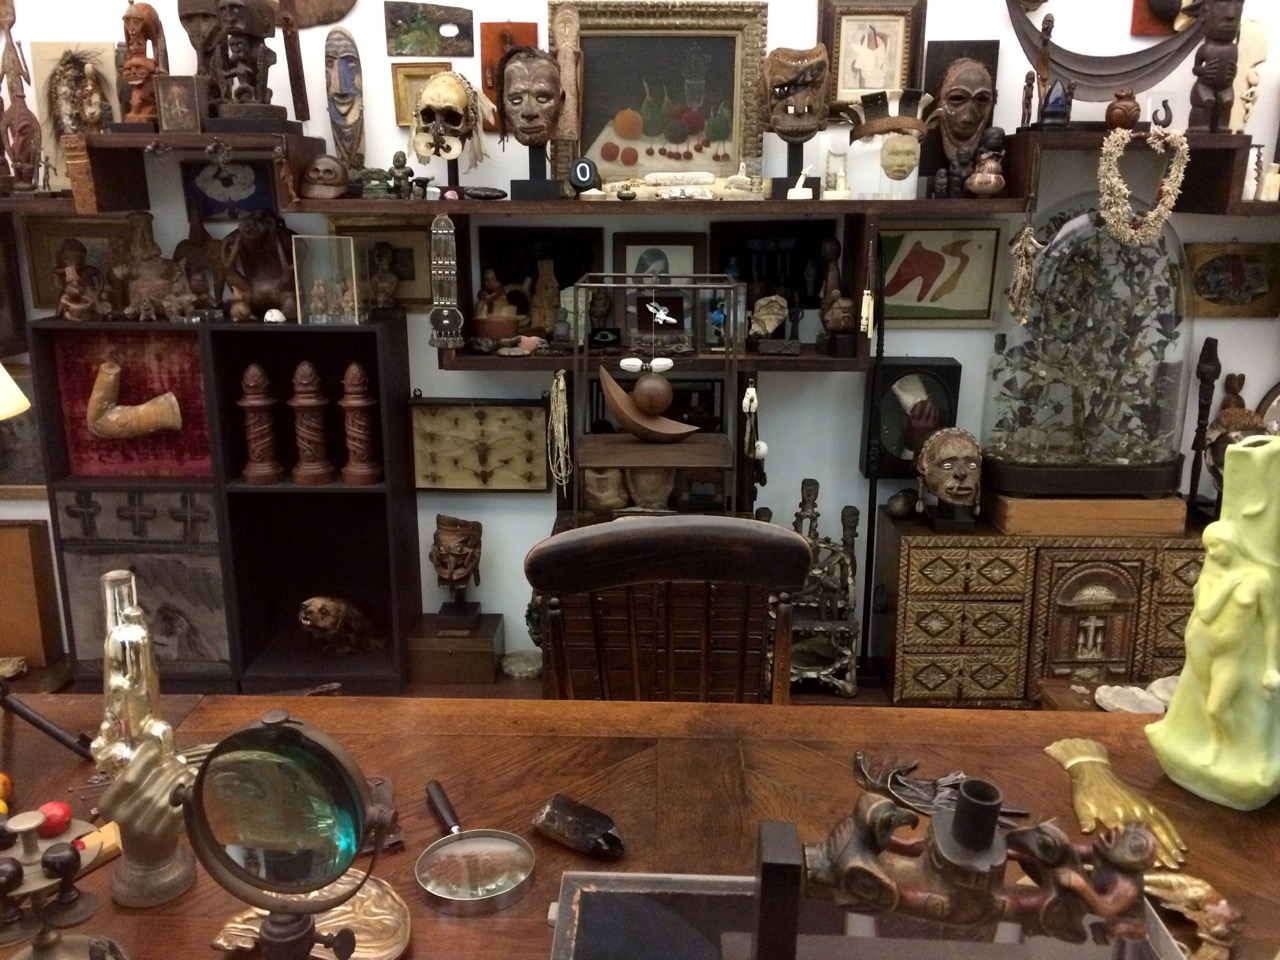 A Cabinet of Curiosities in 2015. Photo by John Donges/Flickr